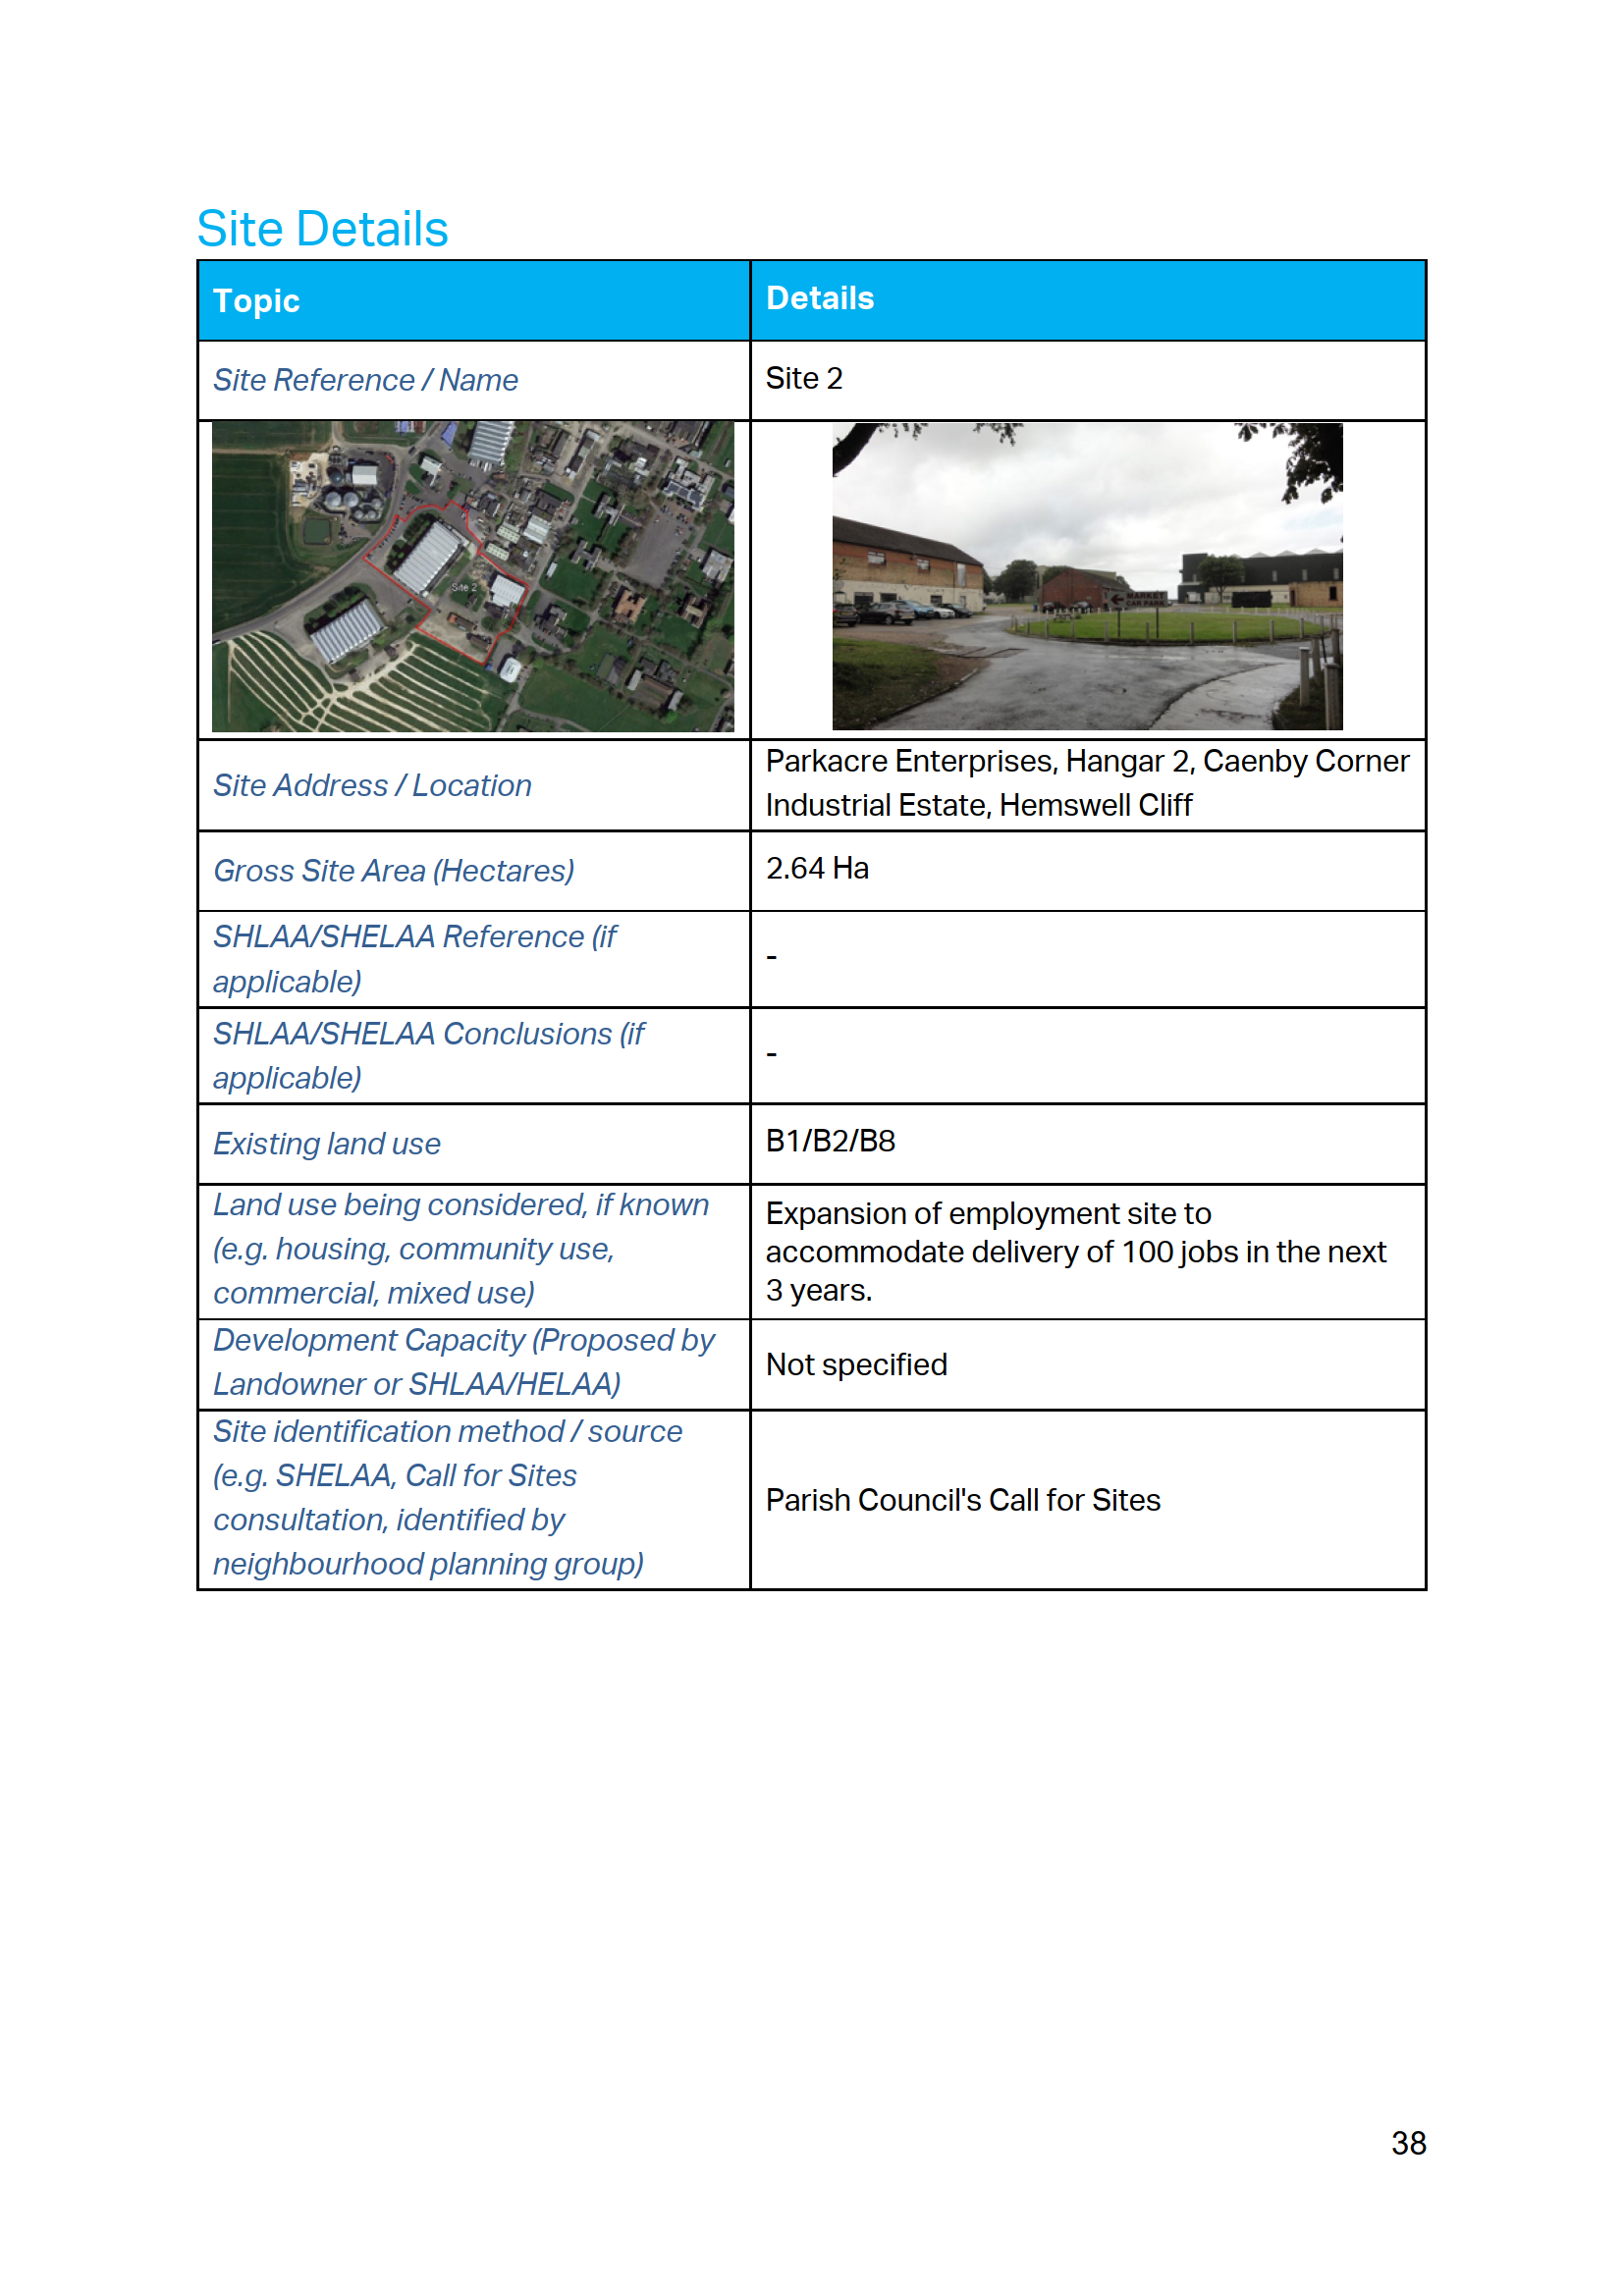 Hemswell_Cliff_Site_Options_and_Assessment_Final_041119-2_38.png